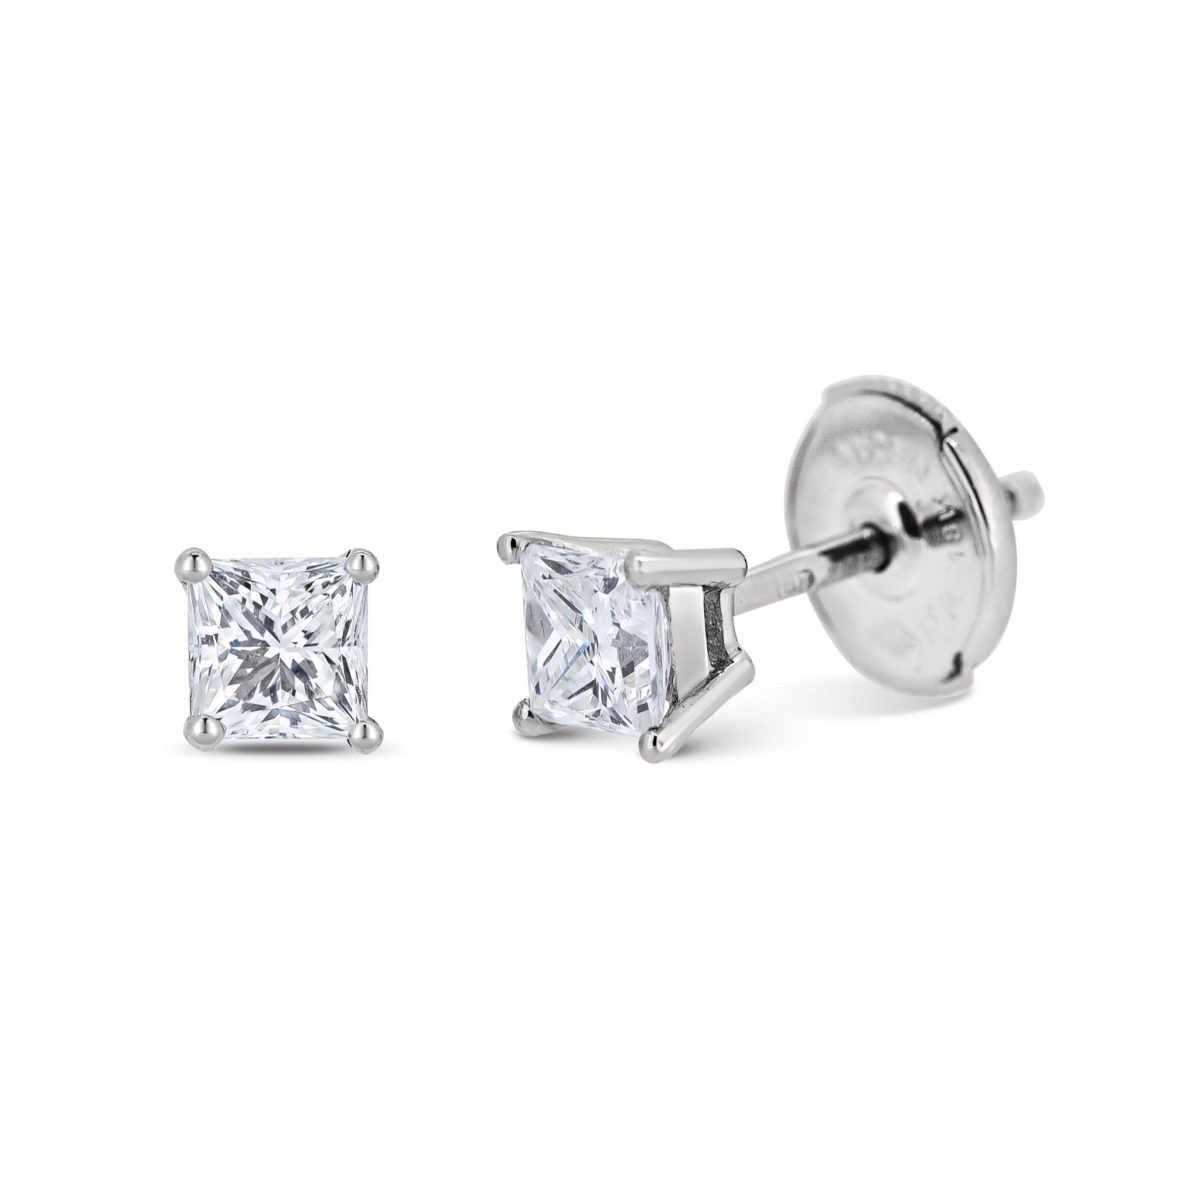 Piper Princess Cut Diamond Solitaire Claw Set Earrings